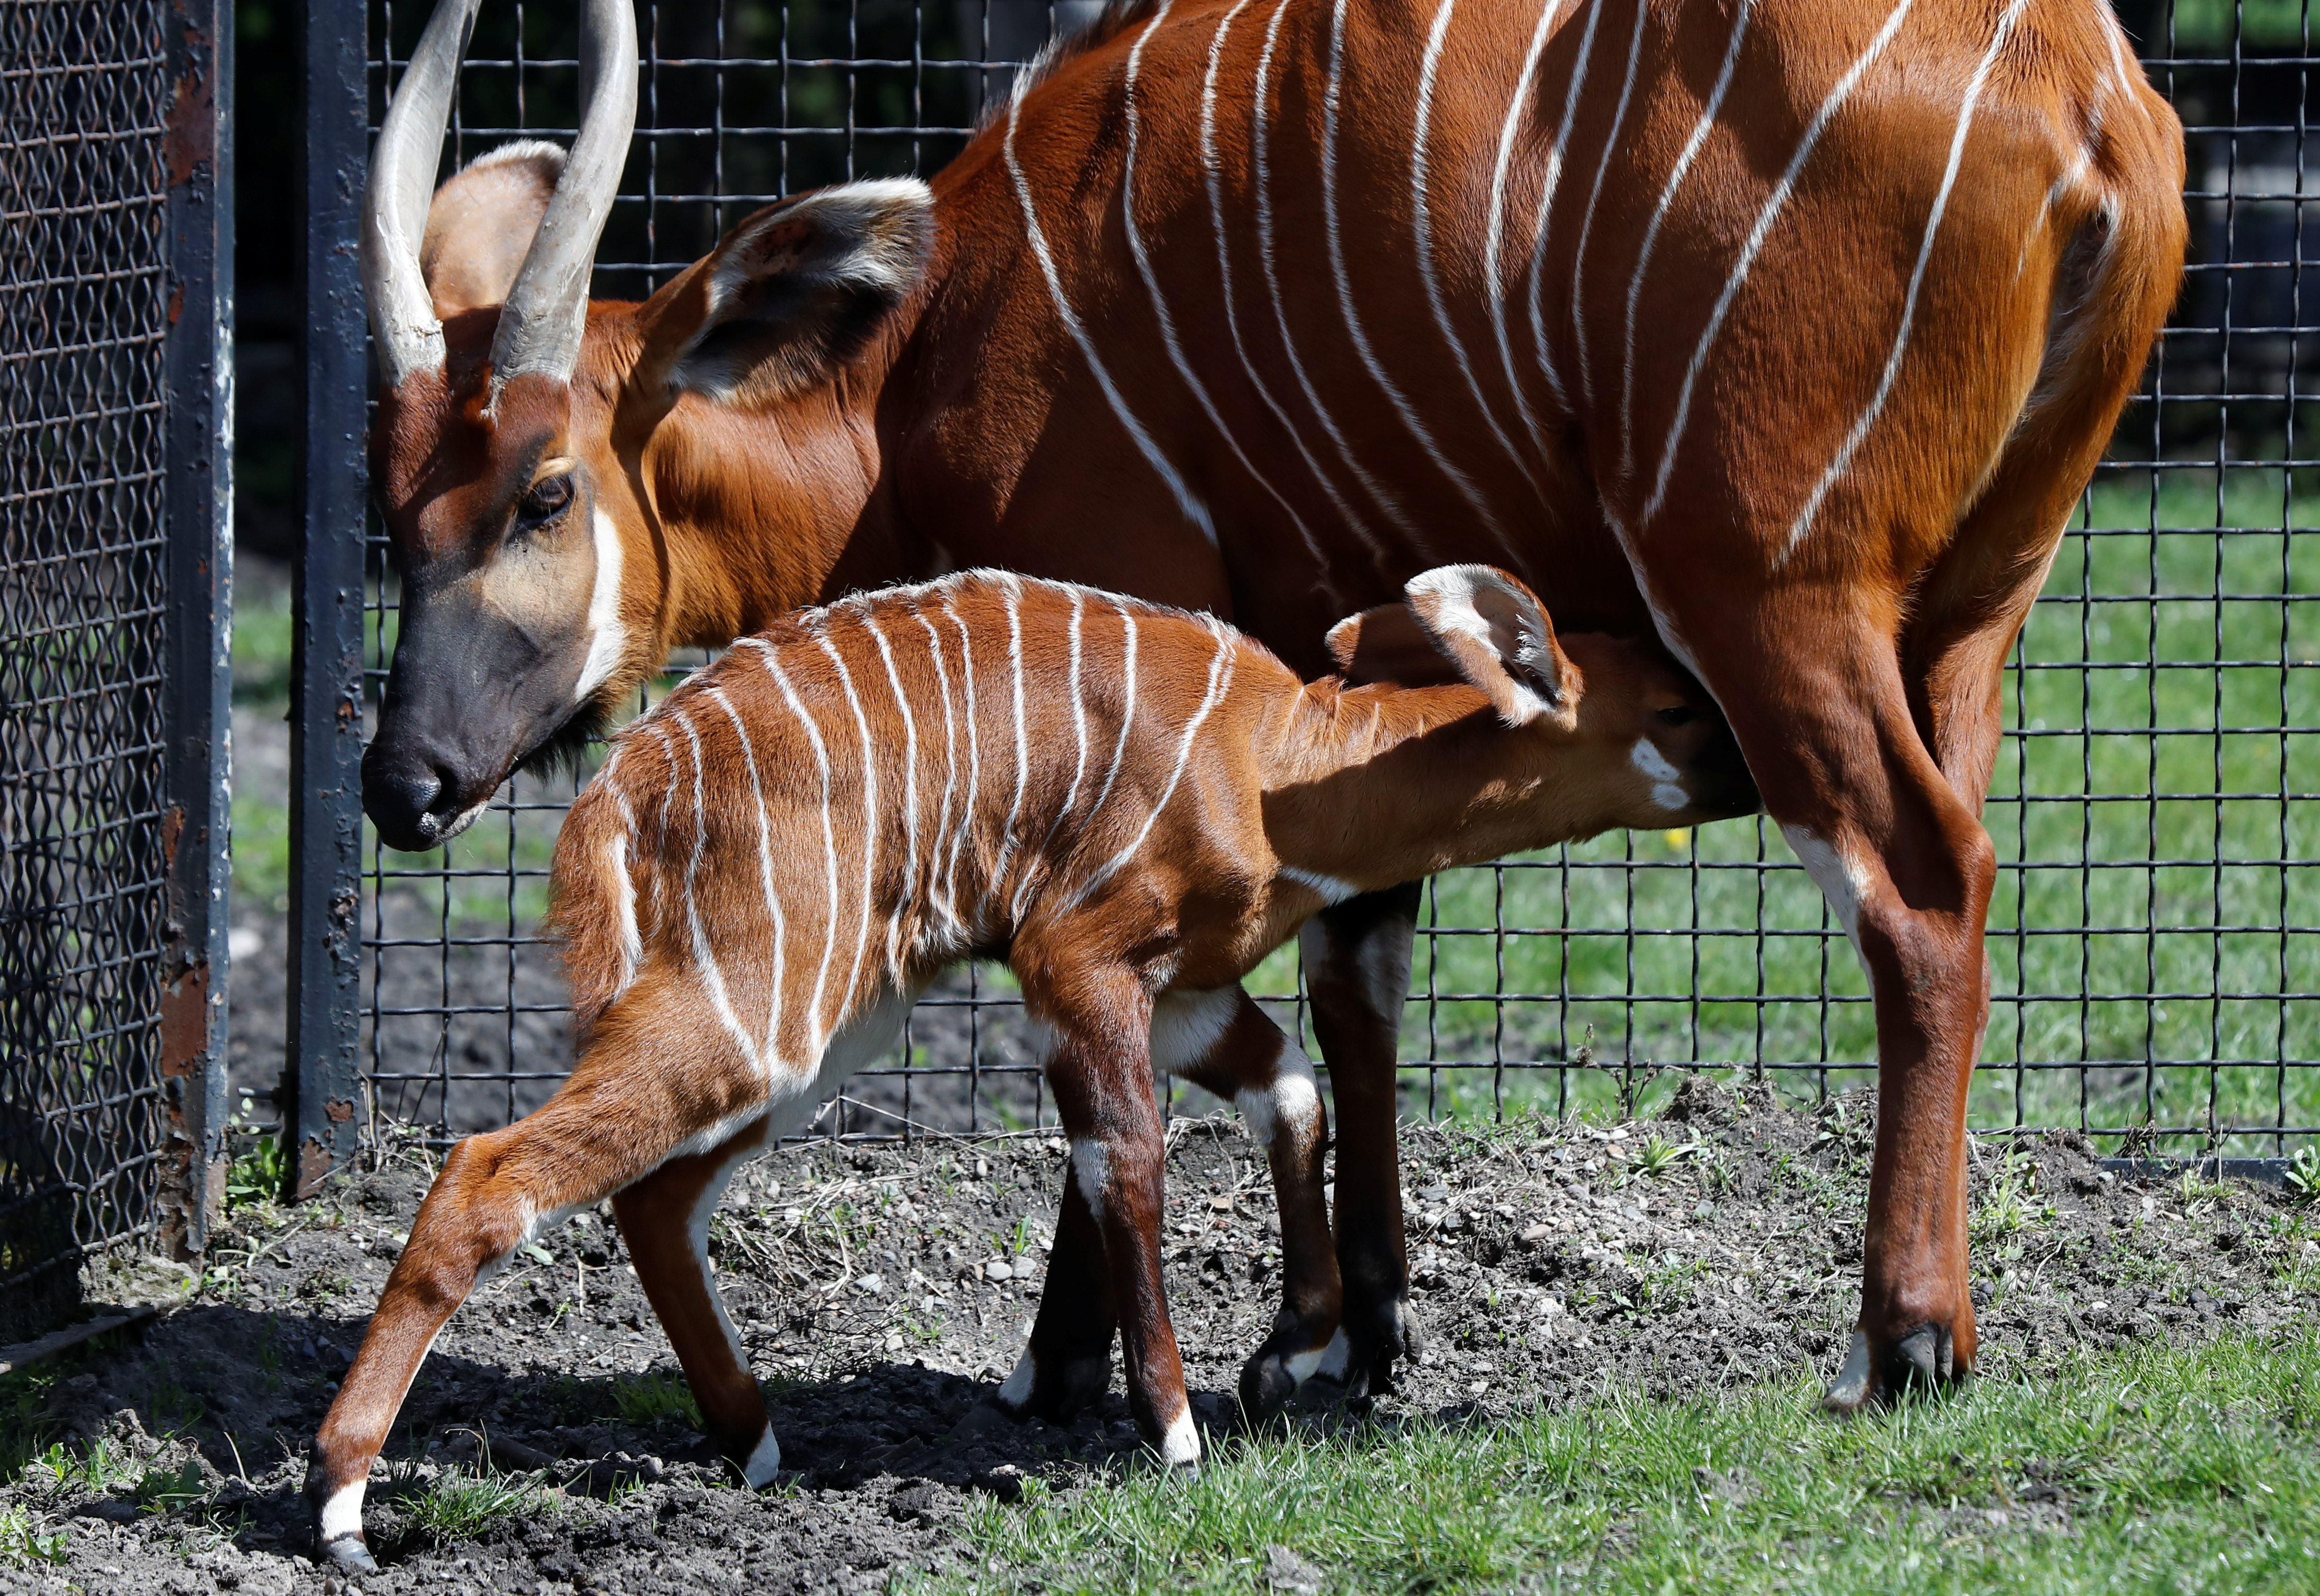 A newborn mountain bongo, the largest of African forest antelopes, is fed by its mother in the Warsaw Zoo, Poland May 6, 2021. Picture taken May 6, 2021. REUTERS/Kacper Pempel